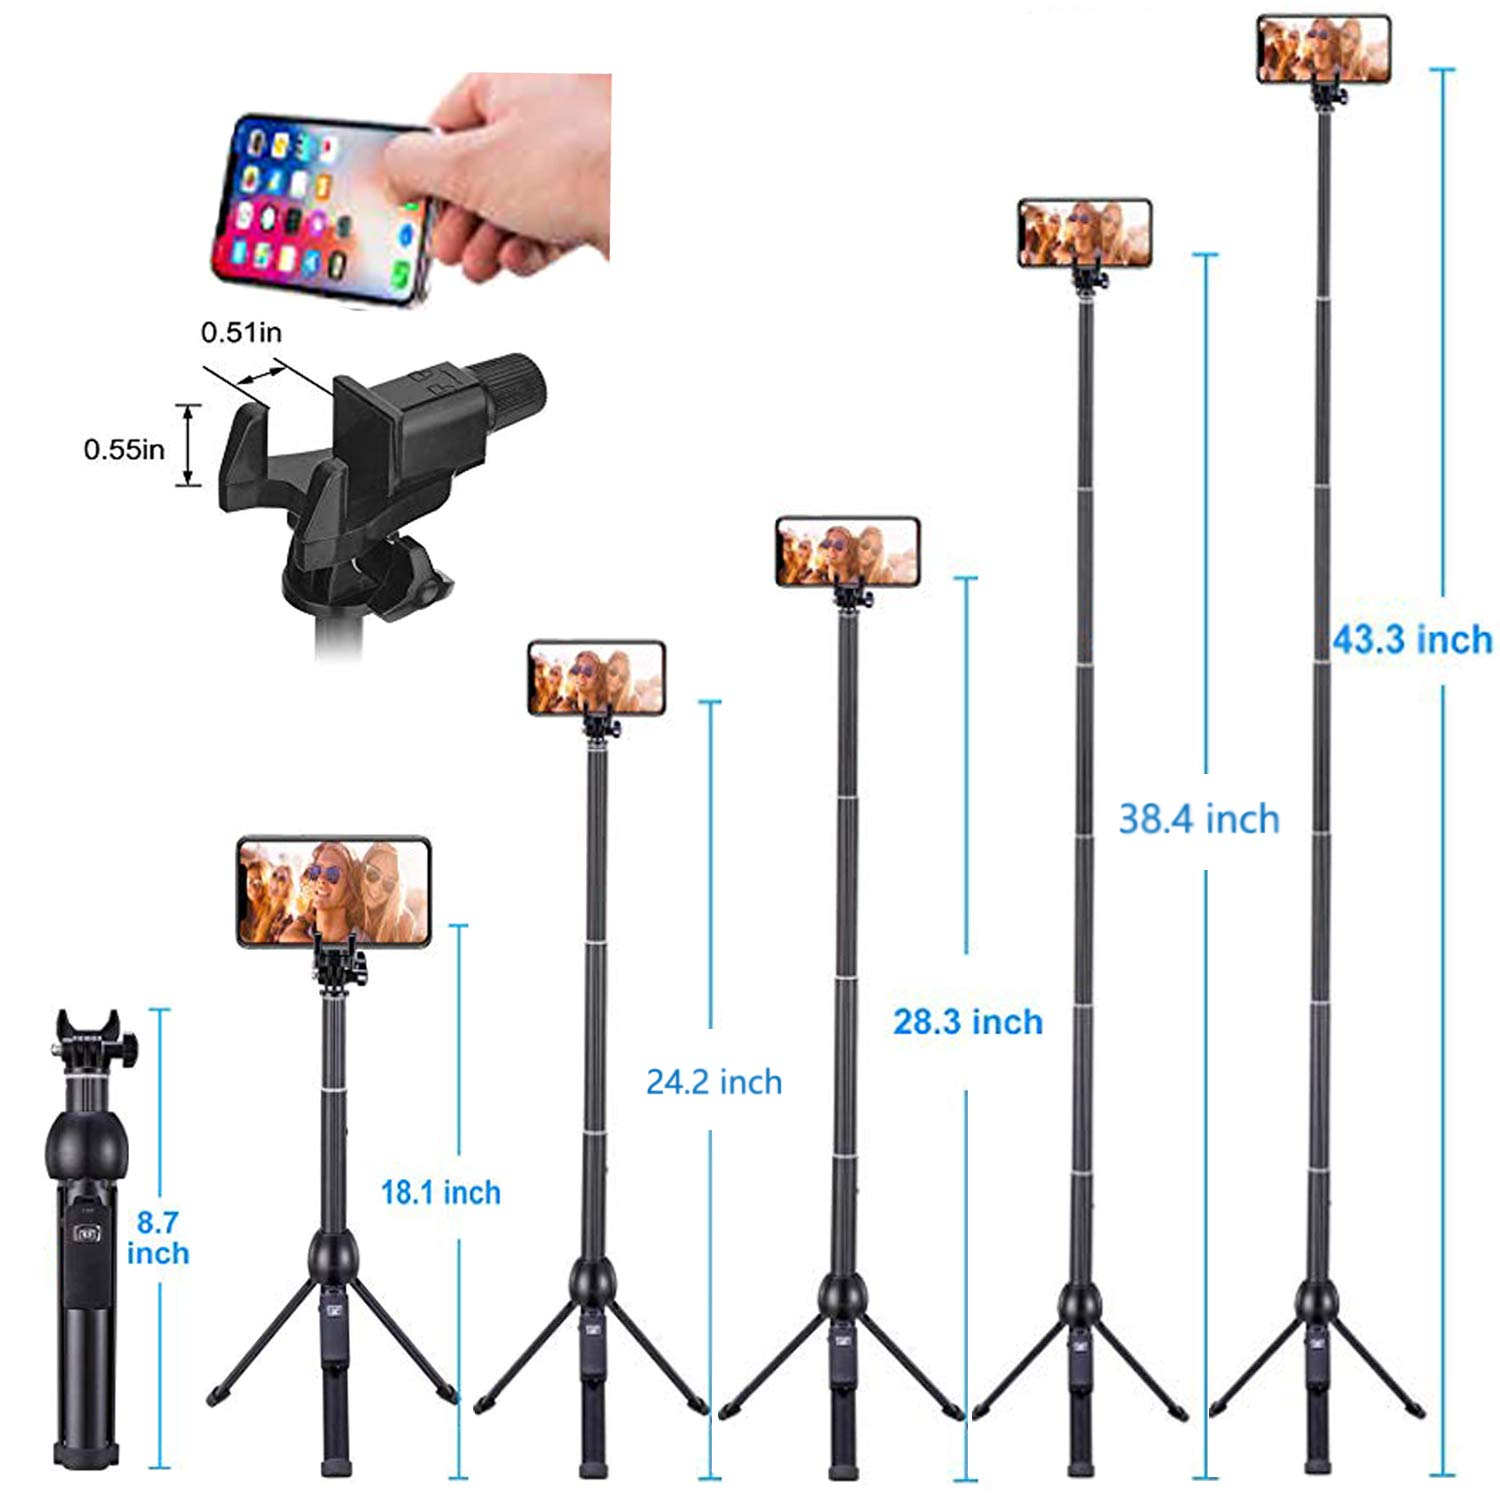 Eocean 45-Inch Selfie Stick Tripod, Extendable Selfie Stick with Wireless Remote Compatible with iPhone Xs/Xr/Xs Max/X/8 Plus/8/ iPhone XR/iPhone XS/iPhone XS Max/7 Plus/Galaxy Note 9/S9/S9 Plus/GoPro by Eocean (Image #5)